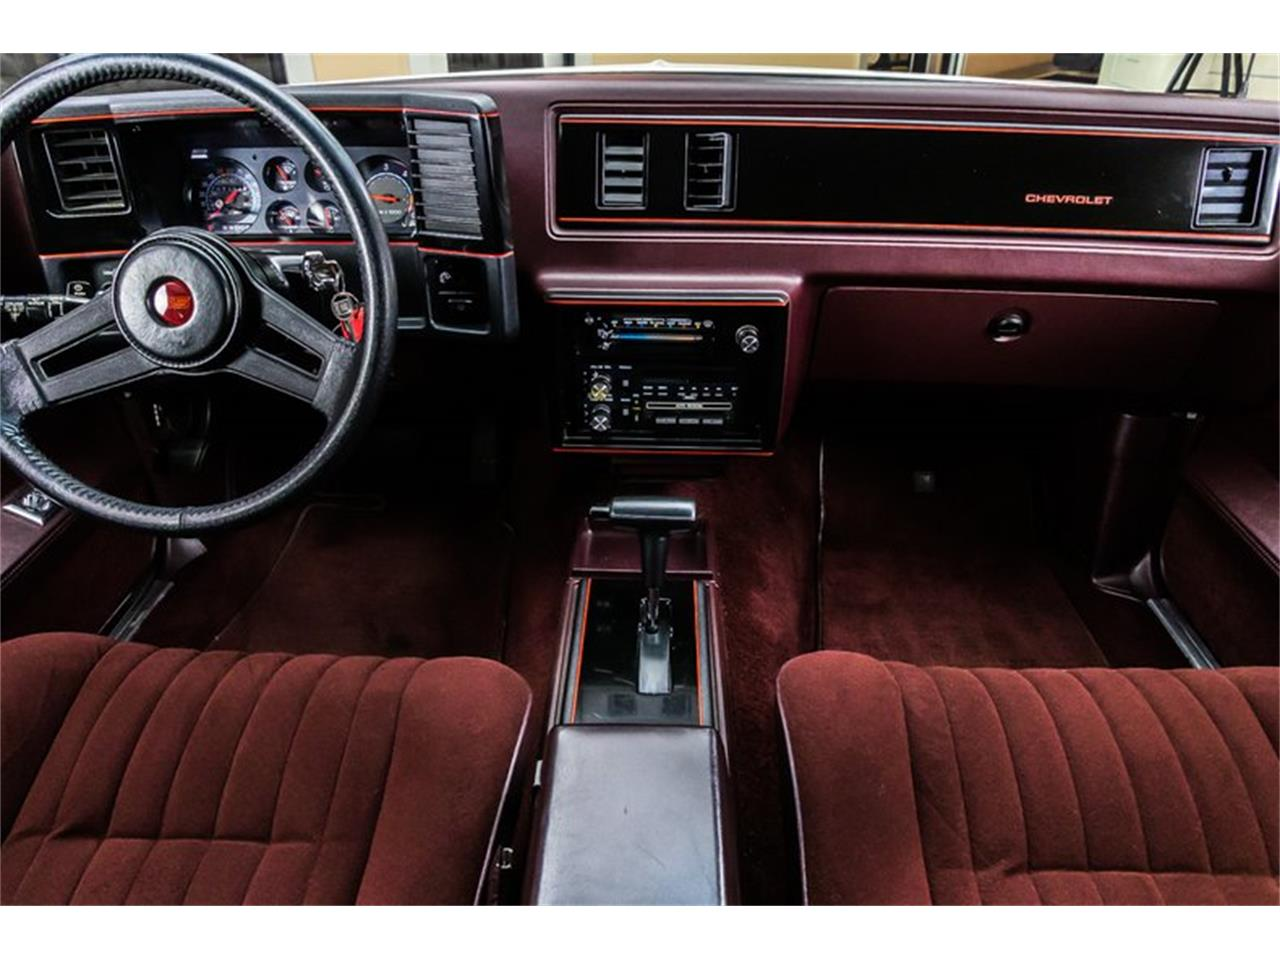 Large Picture of '88 Chevrolet Monte Carlo located in Michigan - $32,900.00 - Q9DY